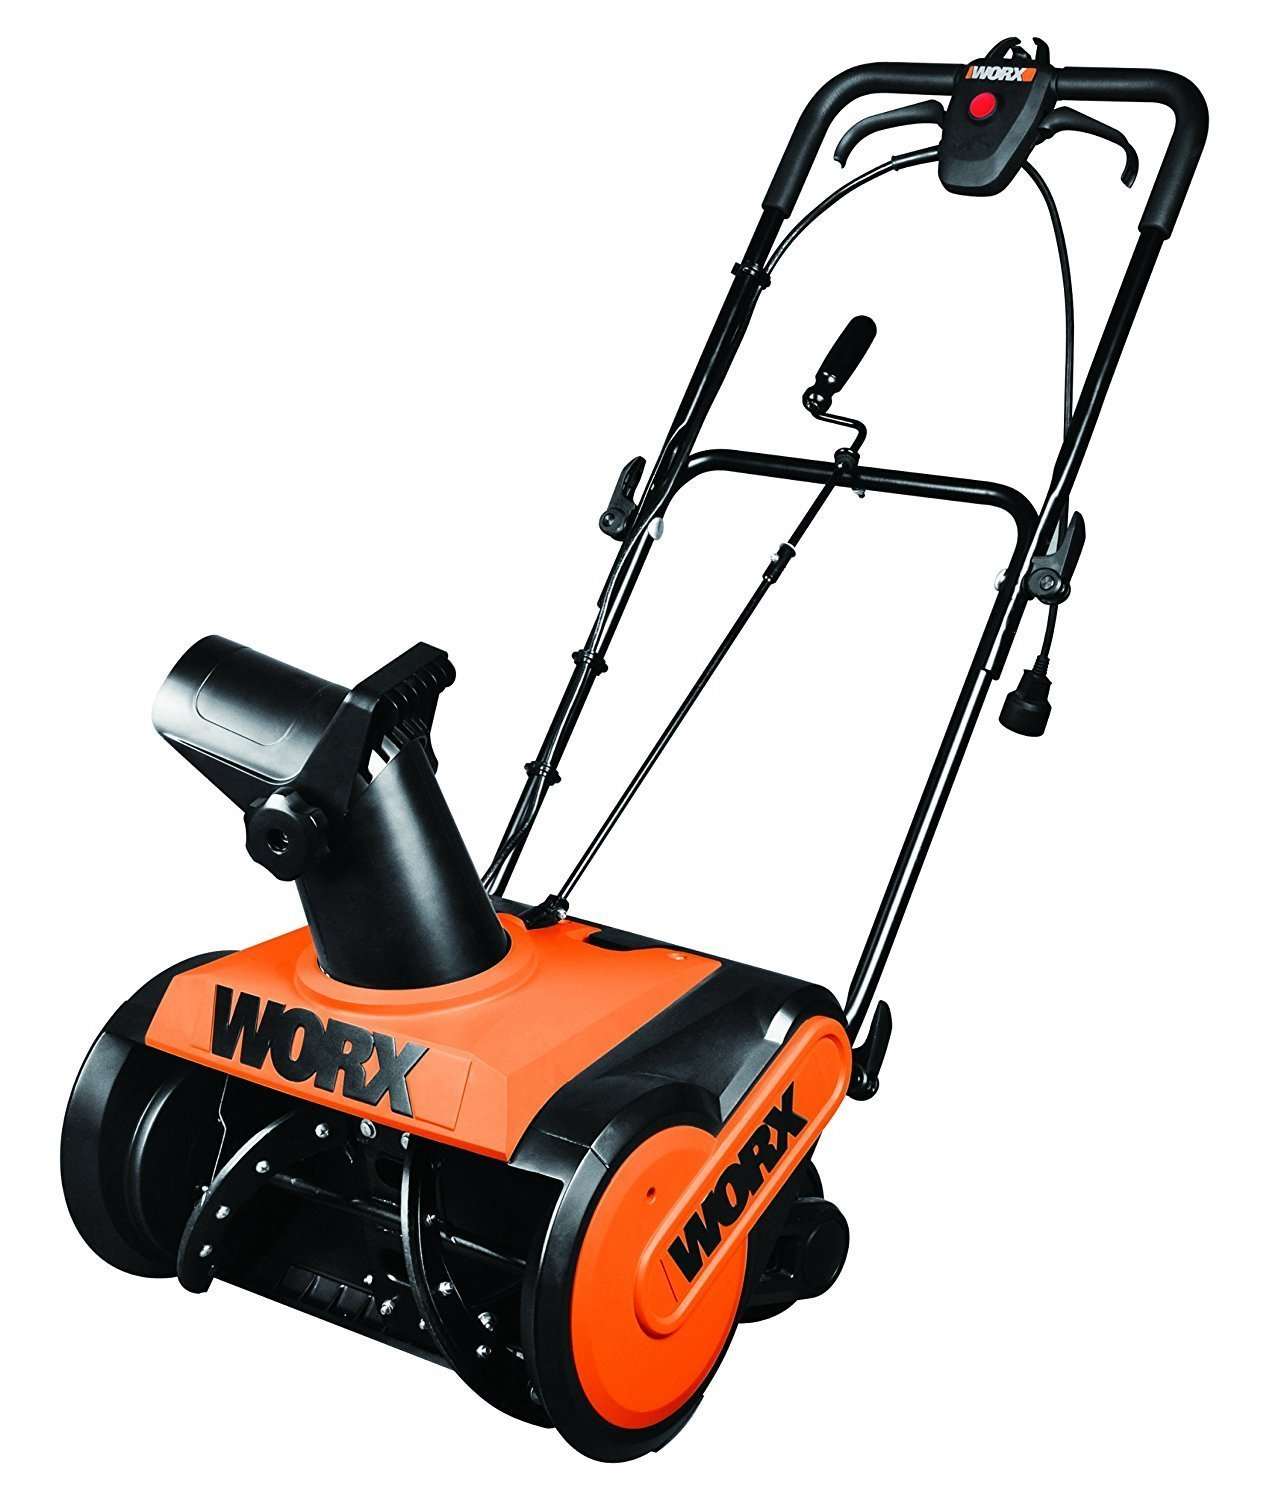 Electric Lawn Mower Reviews Home Furniture Design